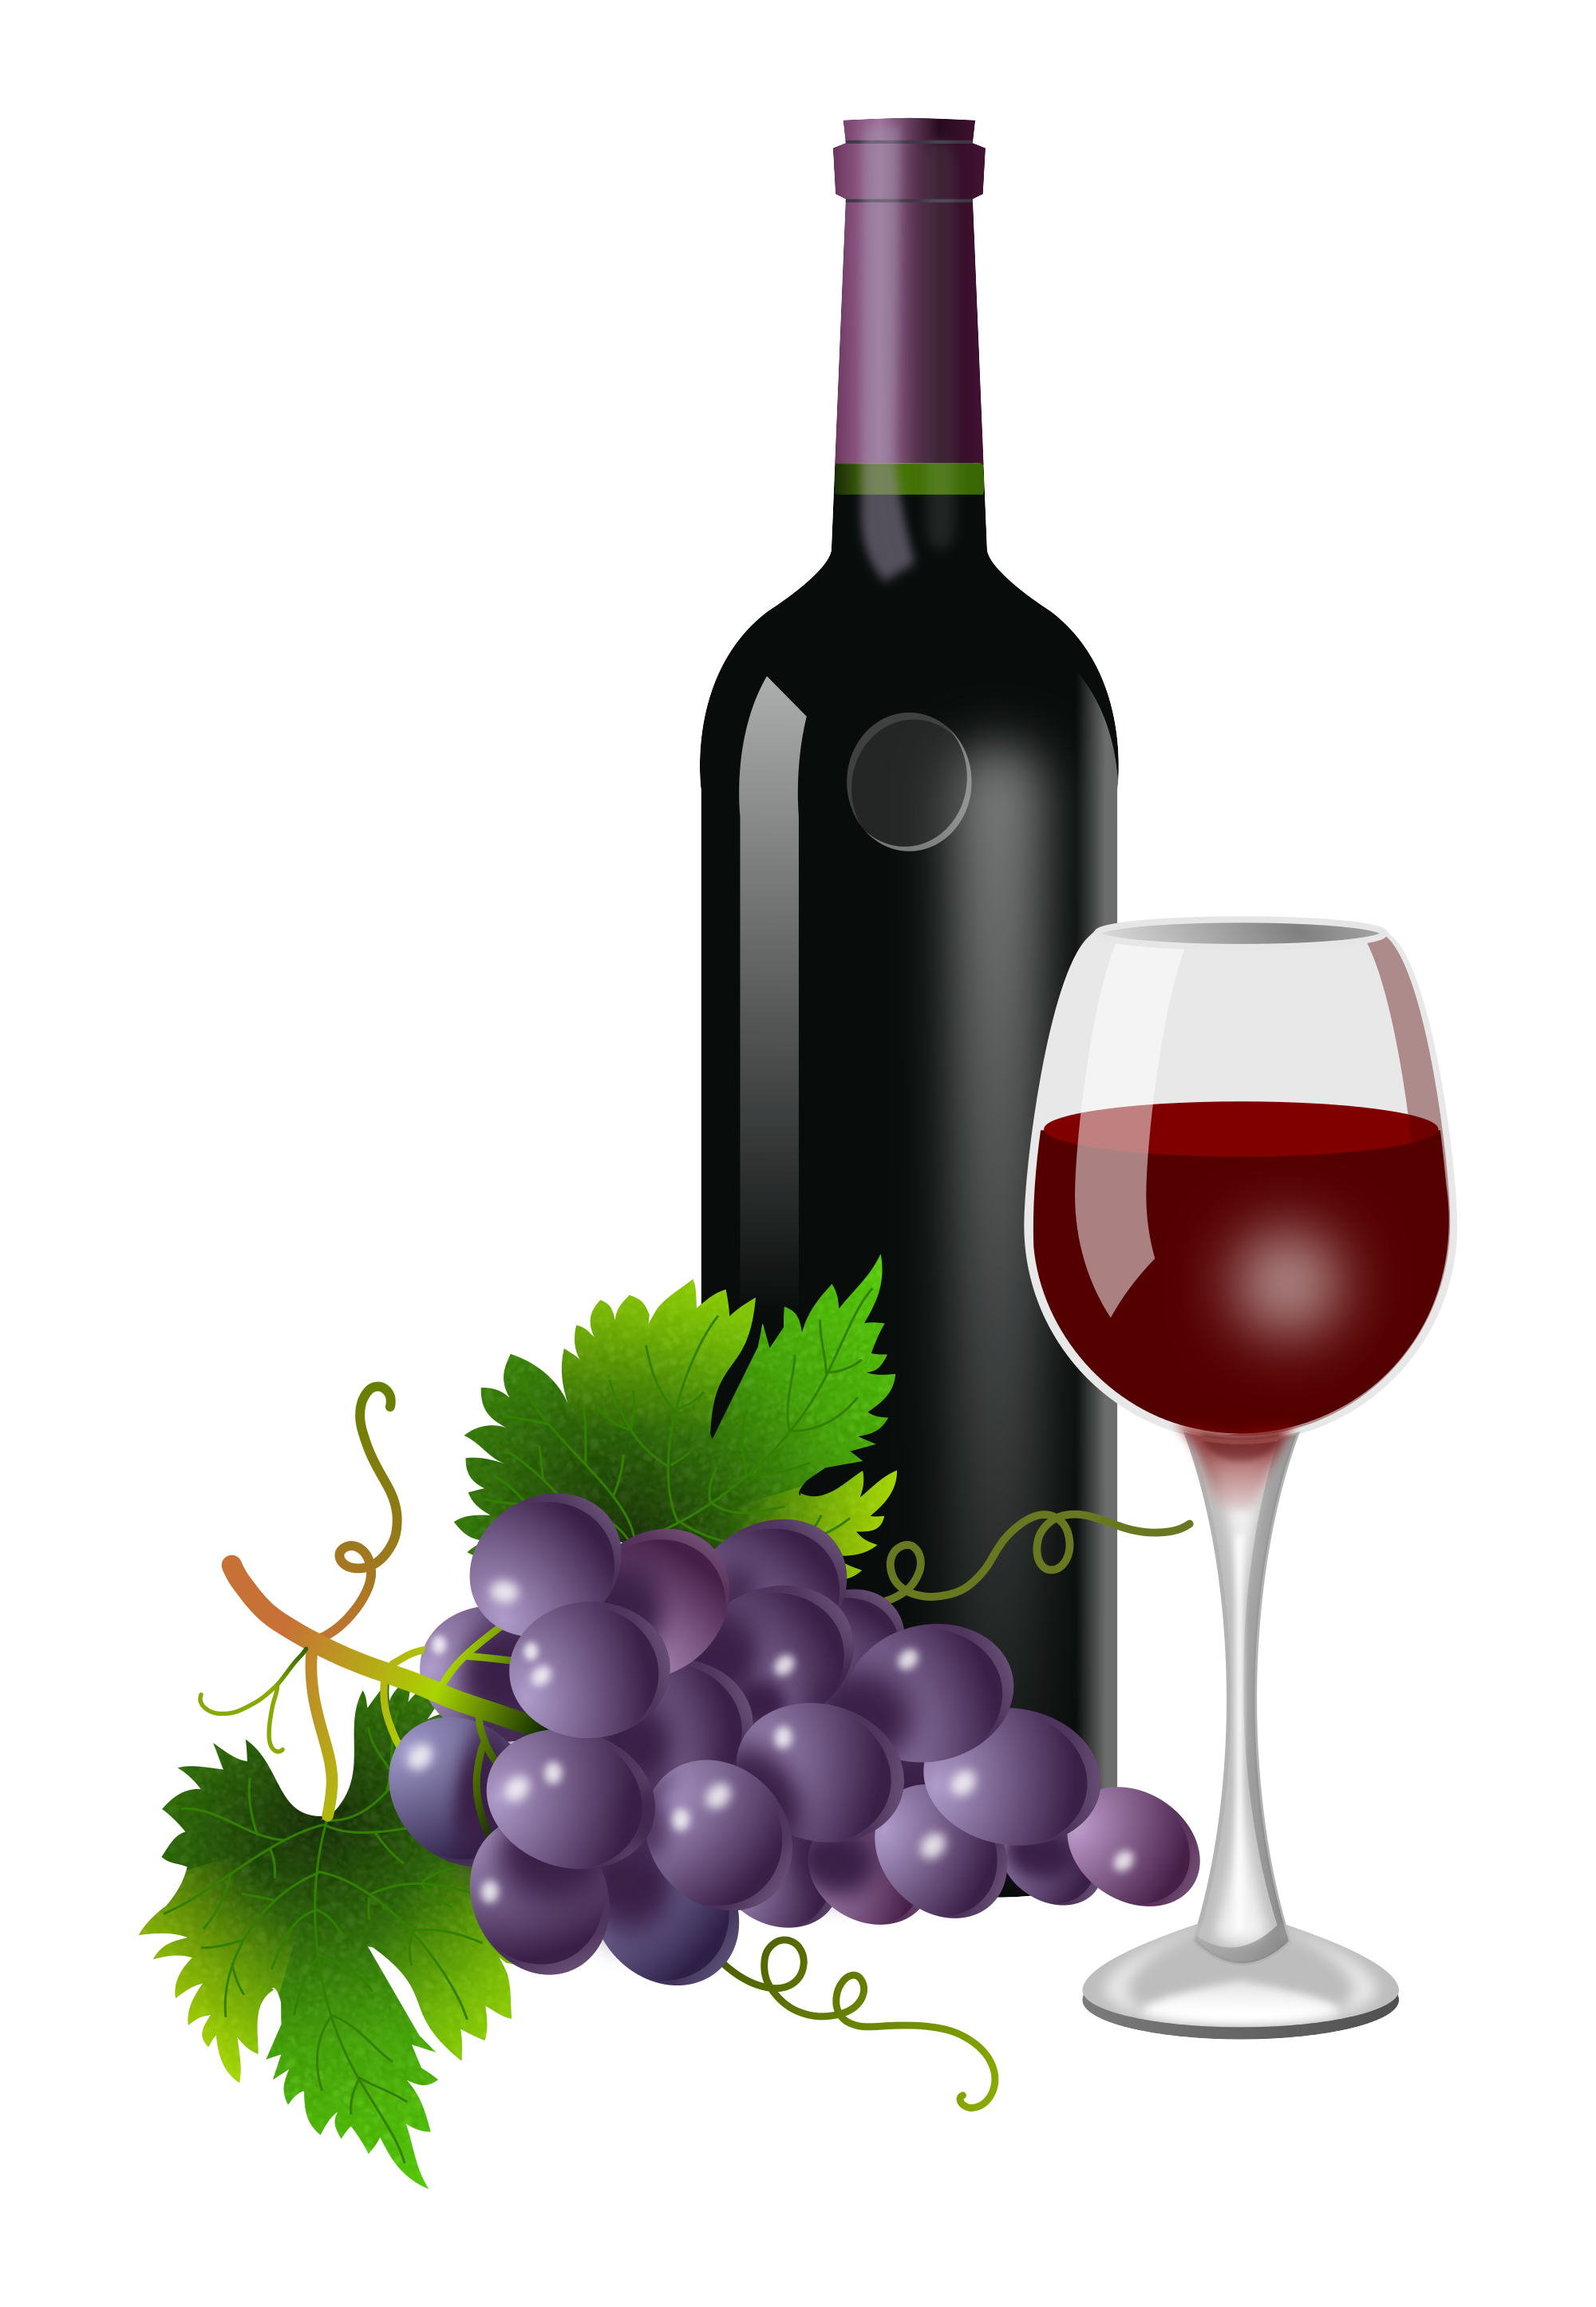 14 - Wine Bottle And Glass, Transparent background PNG HD thumbnail